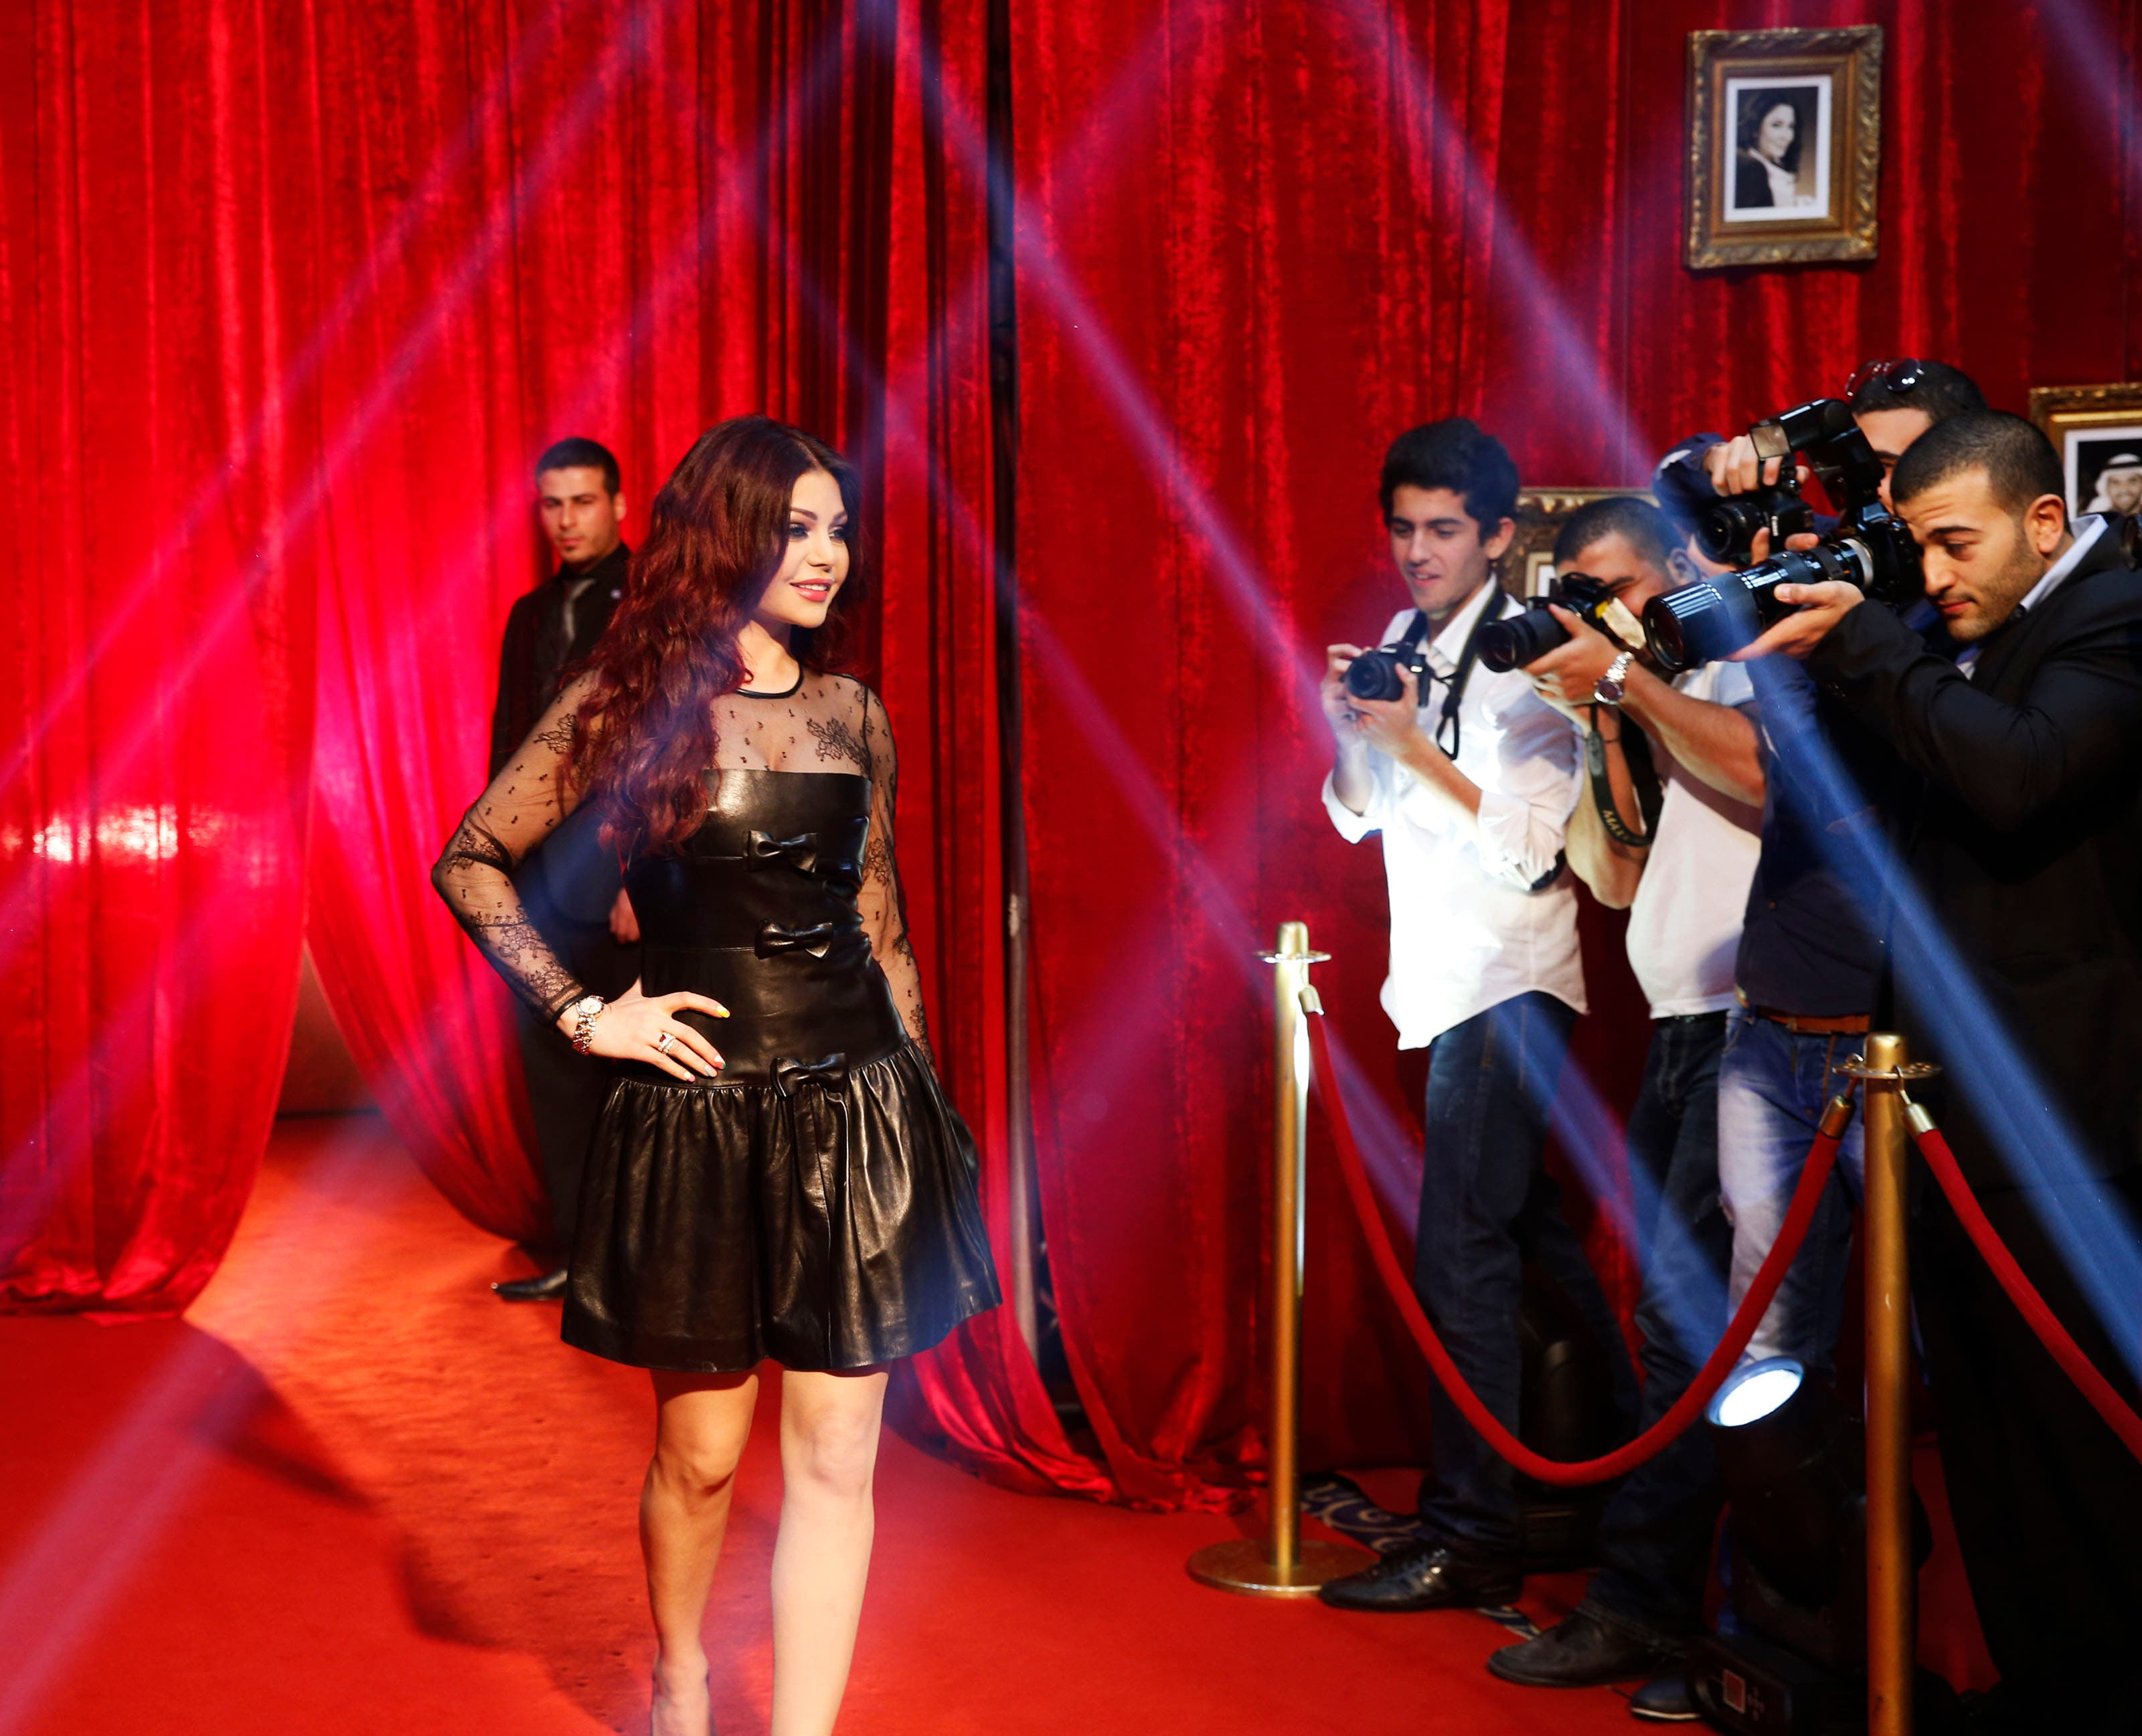 Lebanese star Haifa Wehbe will be one of the jury members on 'Your Face Sounds Familiar'. (Image: MBC)